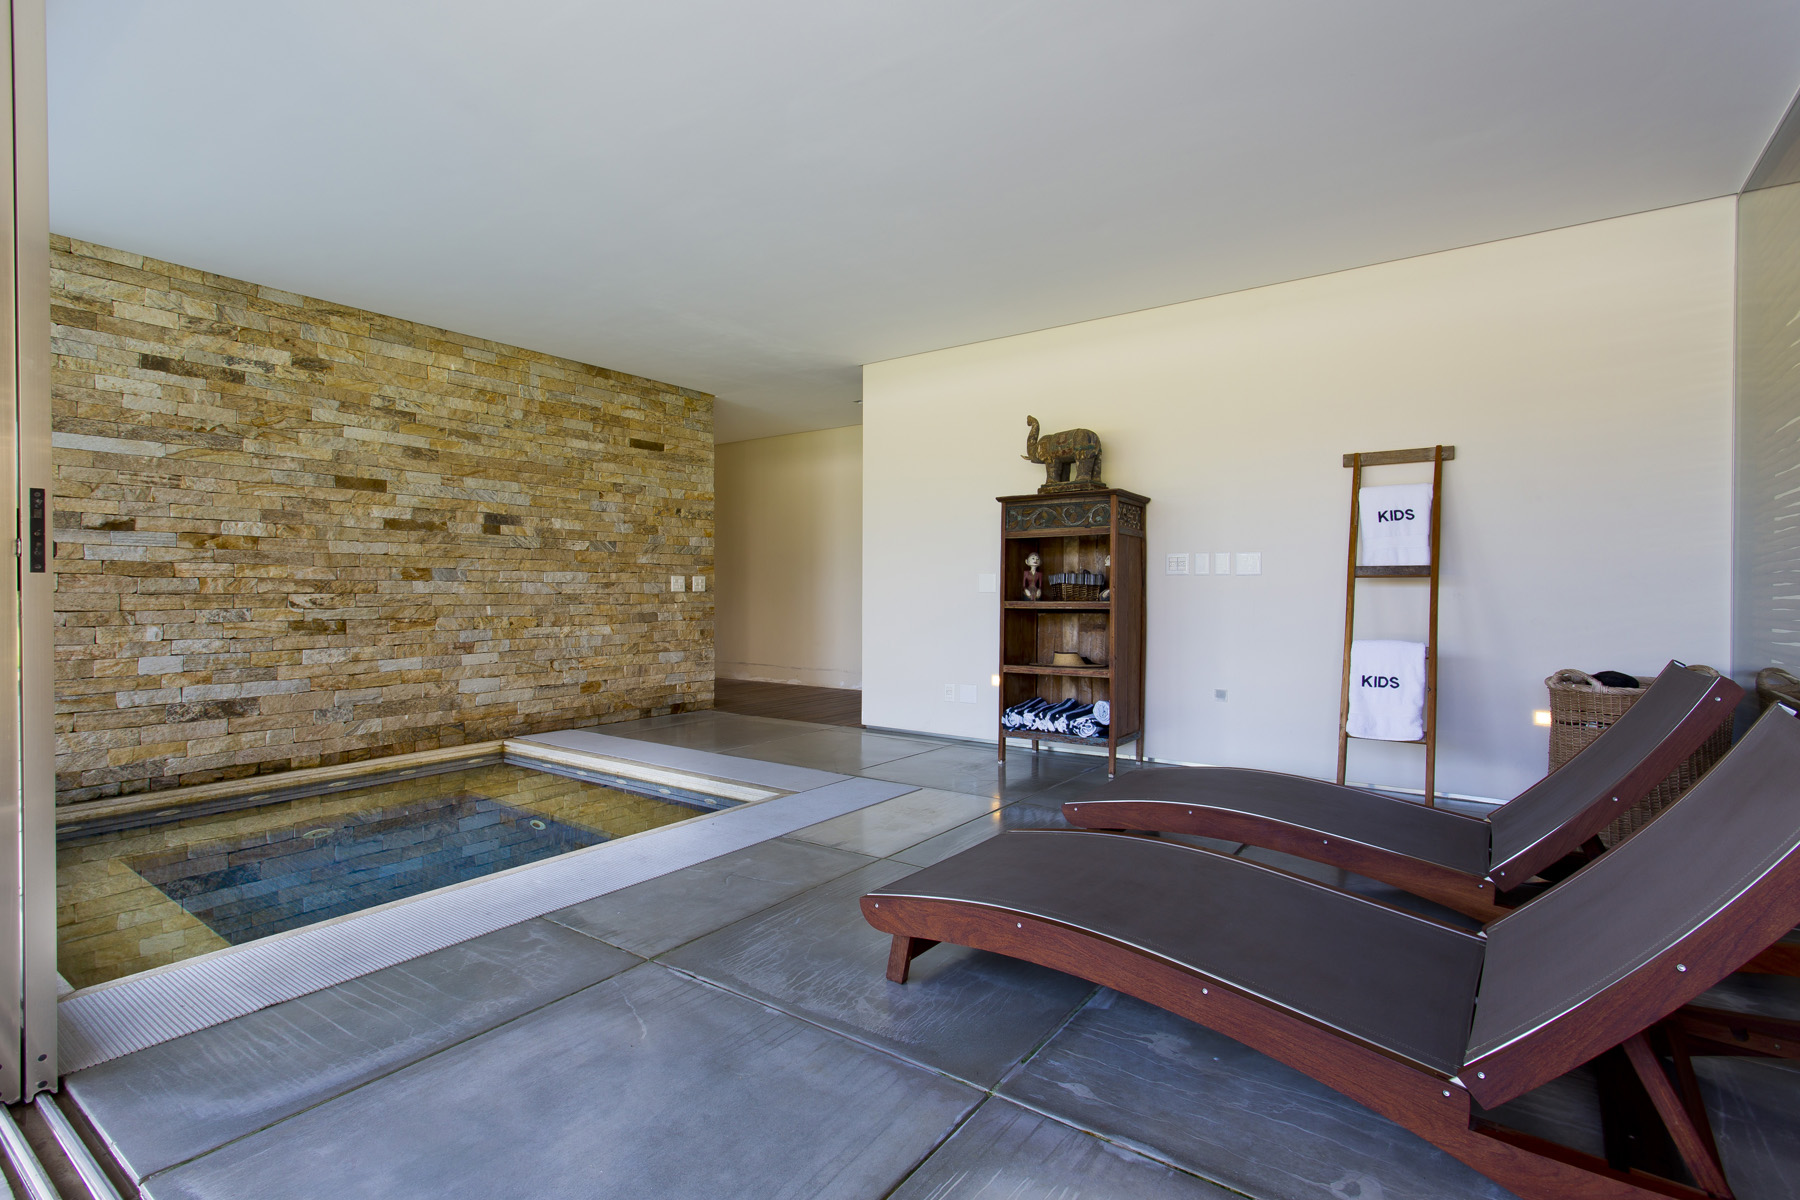 House for sale in Mangaratiba with swimming pool, sauna and private peer